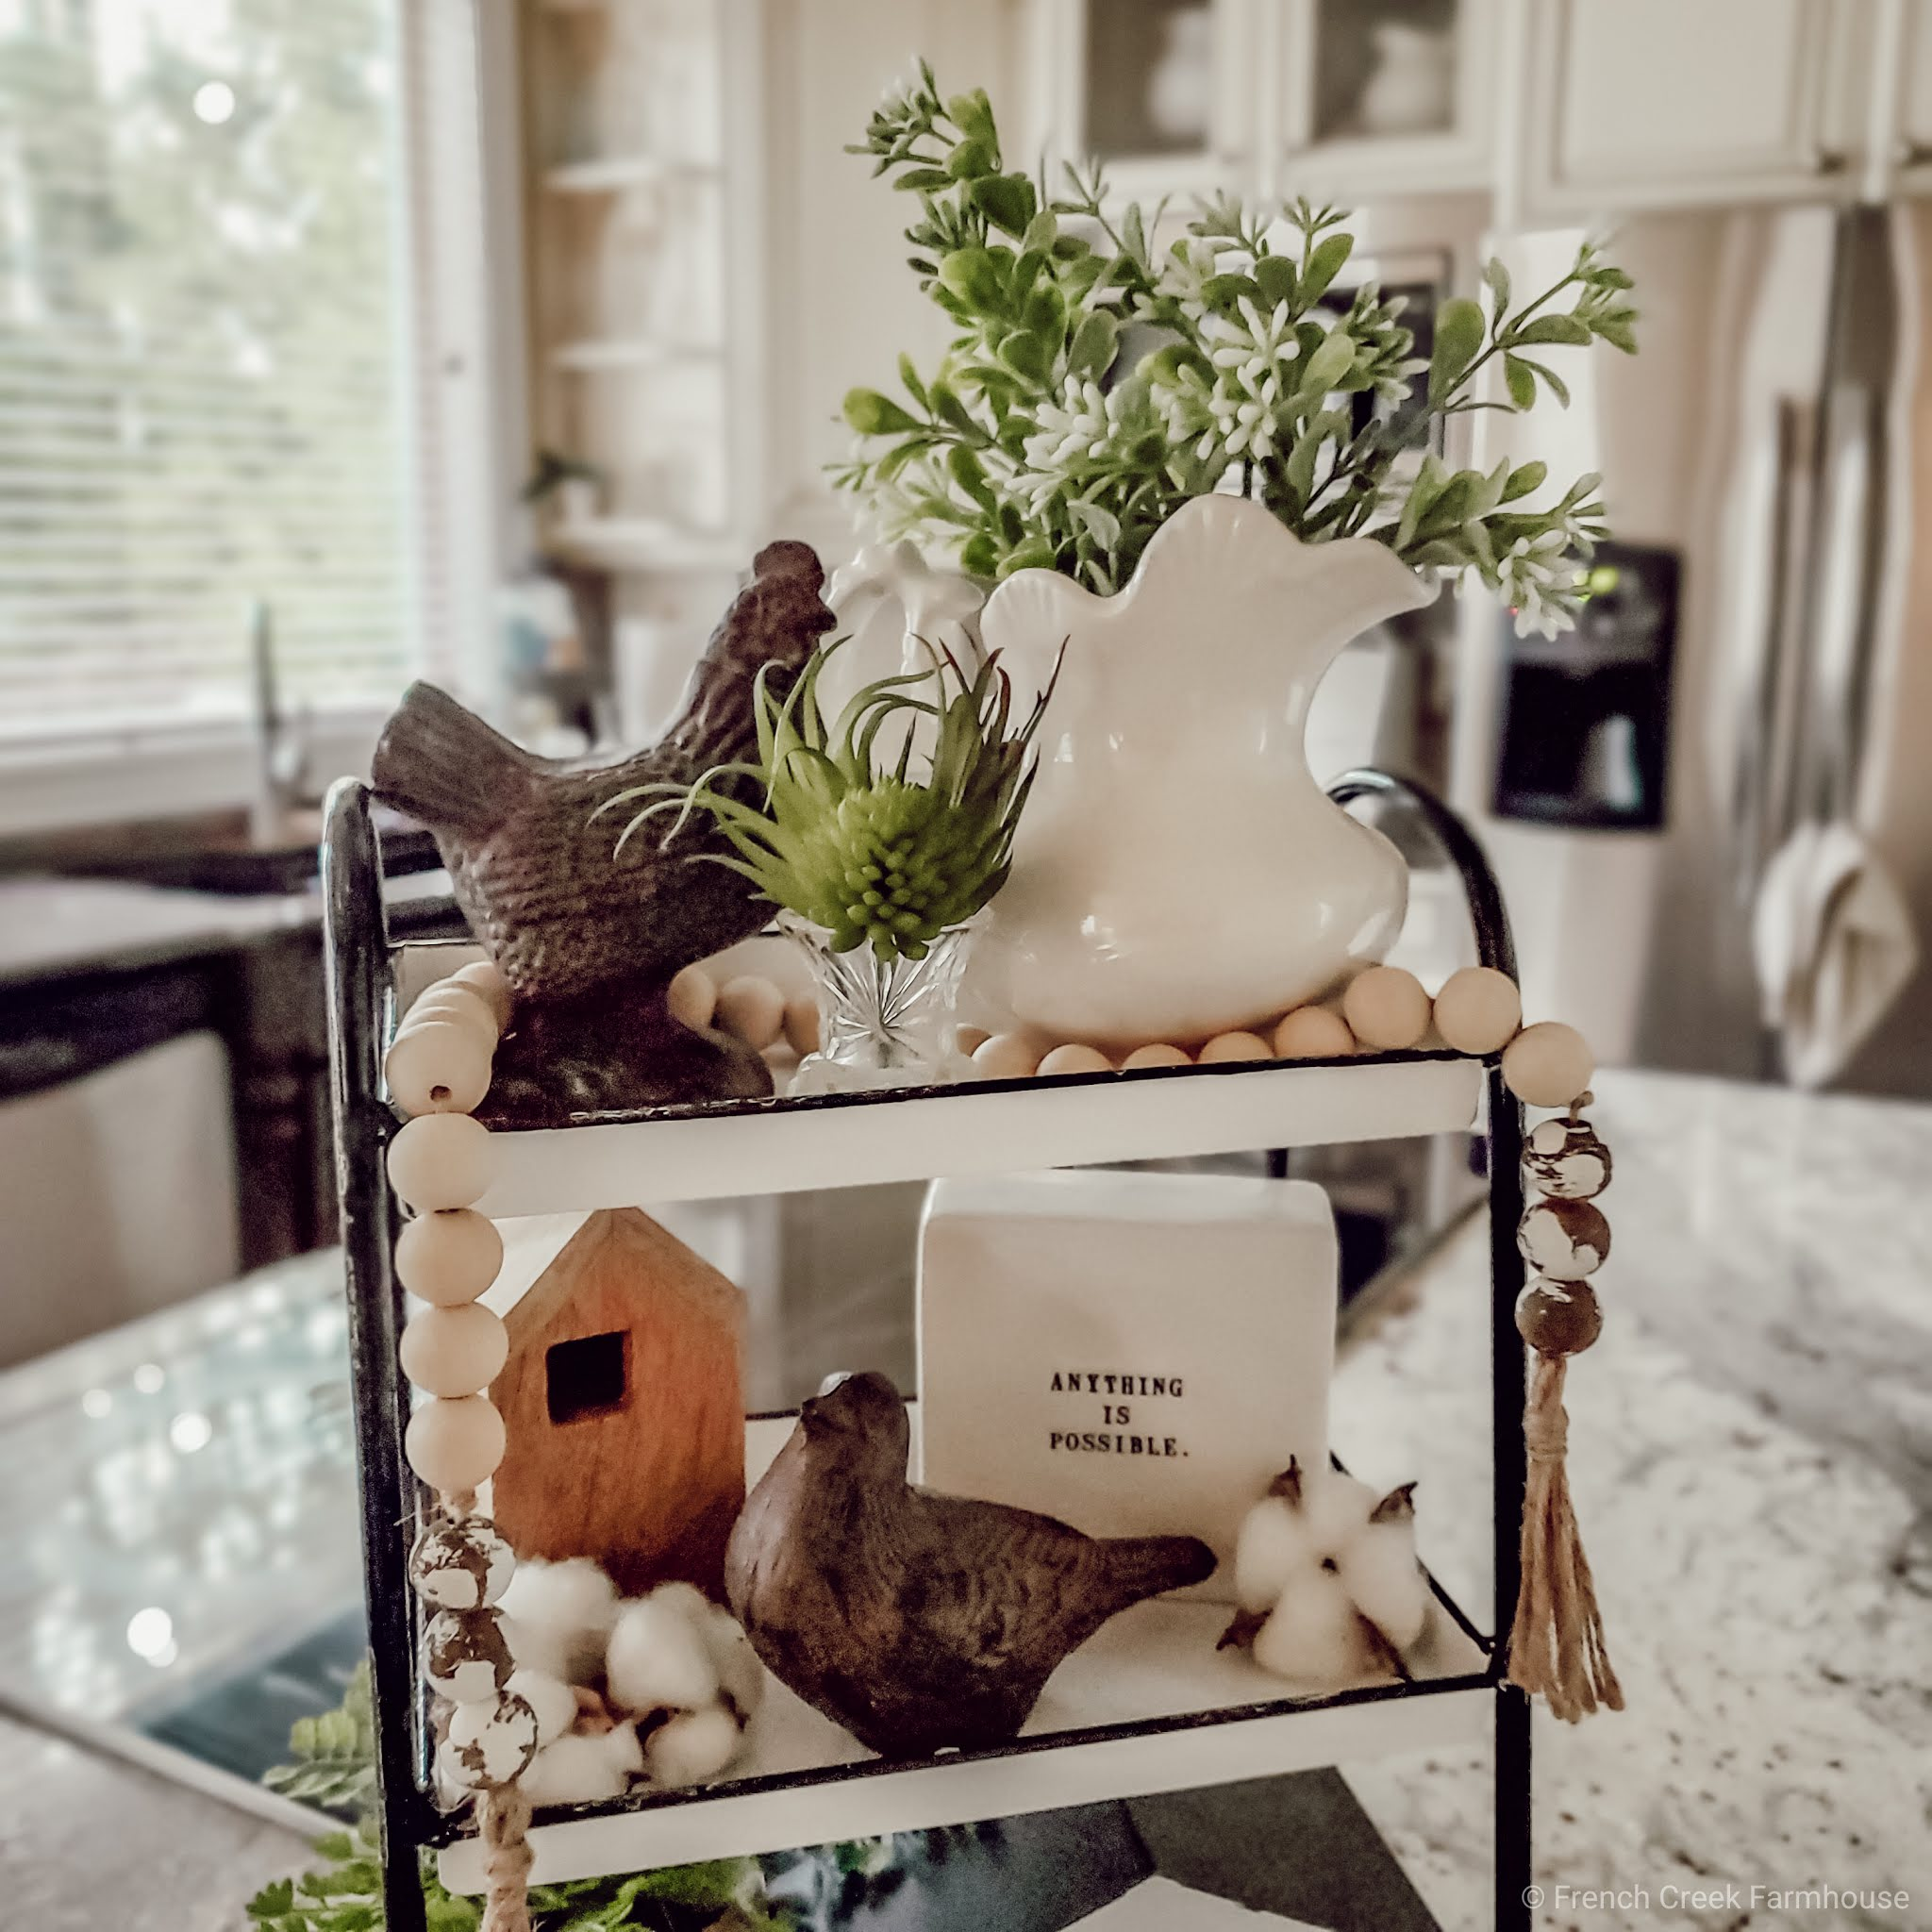 Tiered tray with birds and Rae Dunn decor